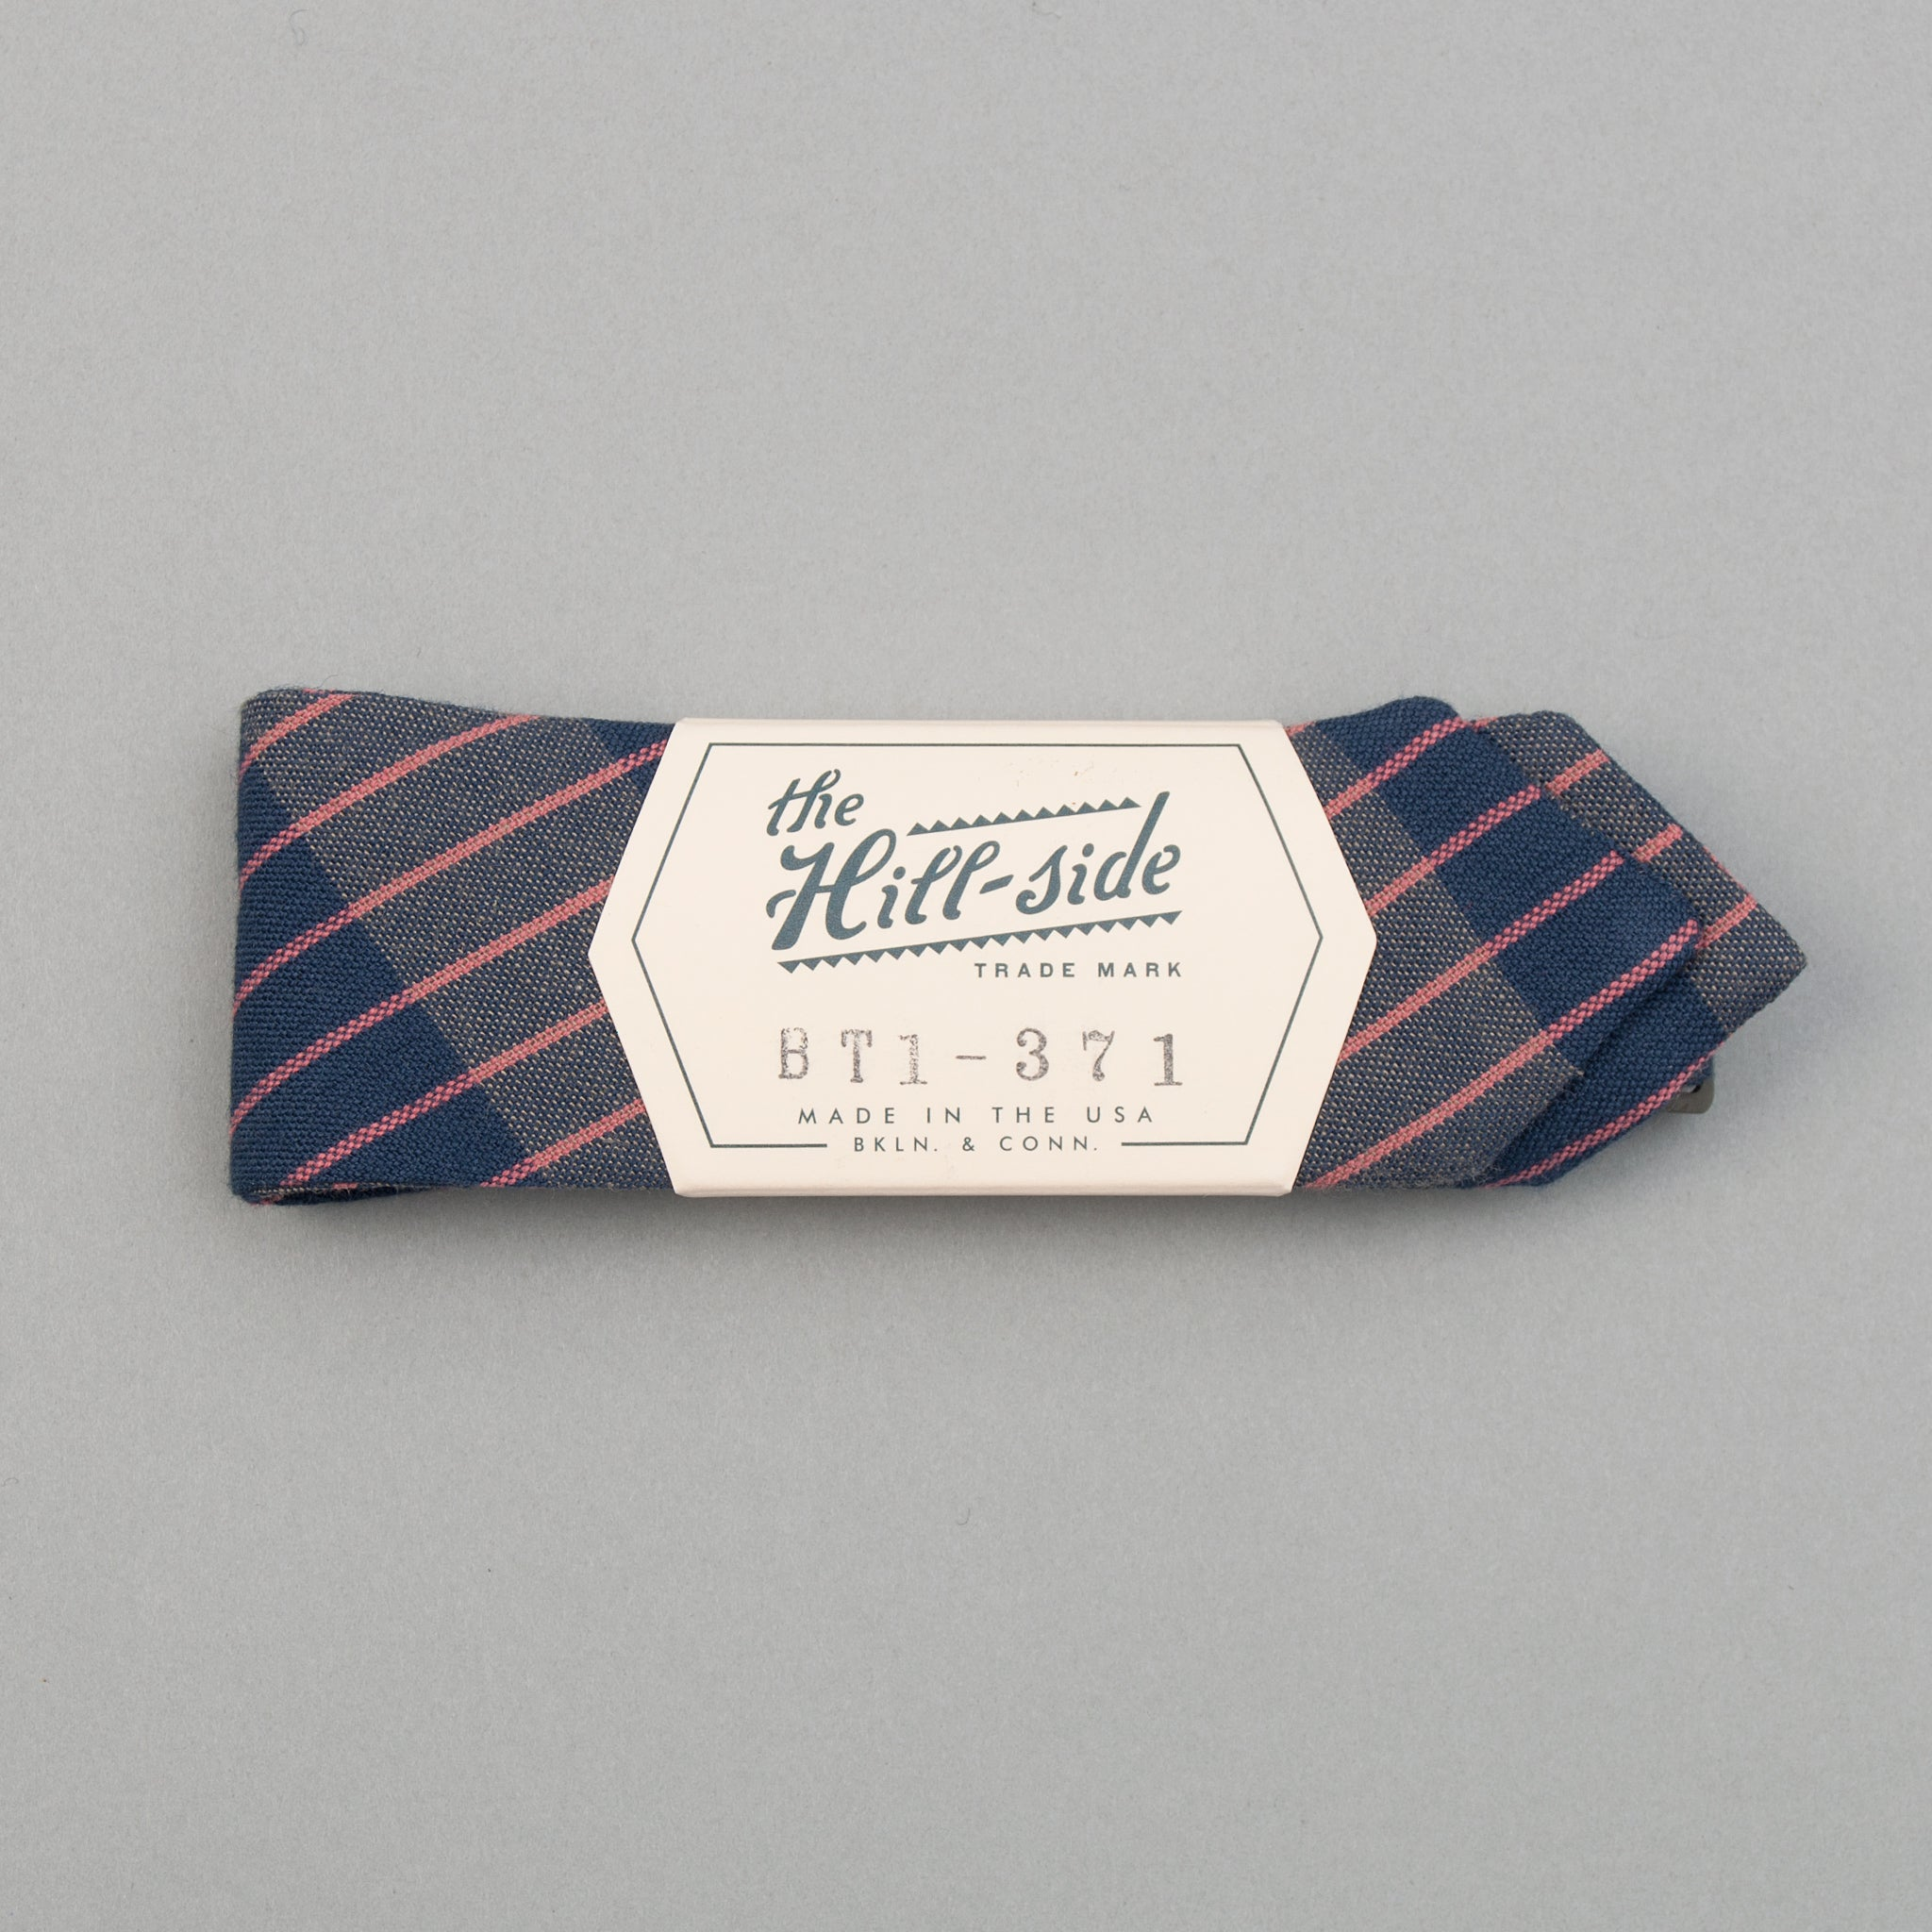 The Hill-Side - Bow Tie, TH-S Mills Navy Warp Large Grid Check, Beige & Coral - BT1-371 - image 1